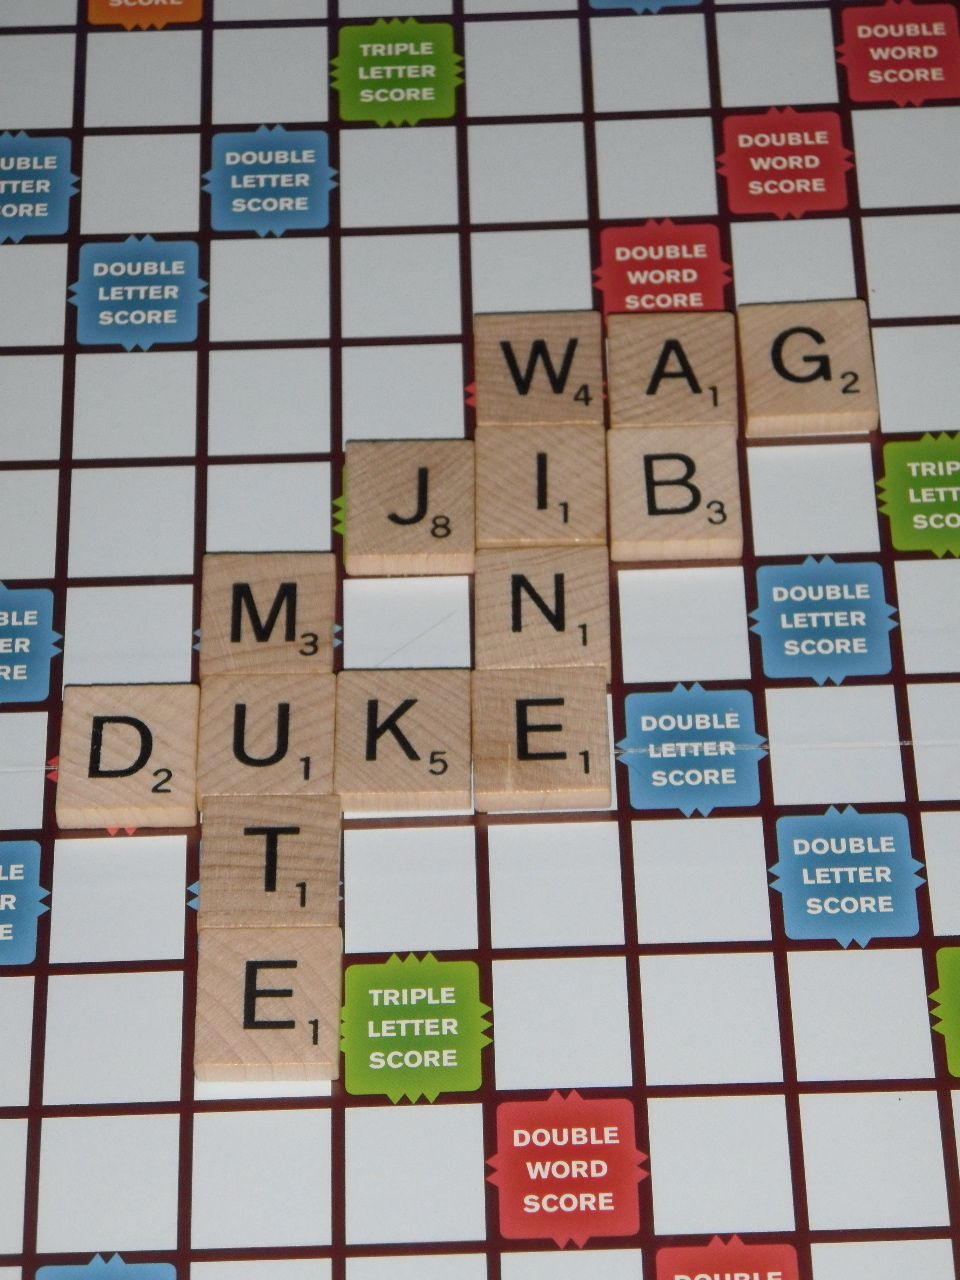 How to Get a High Score in Scrabble Scrabble words